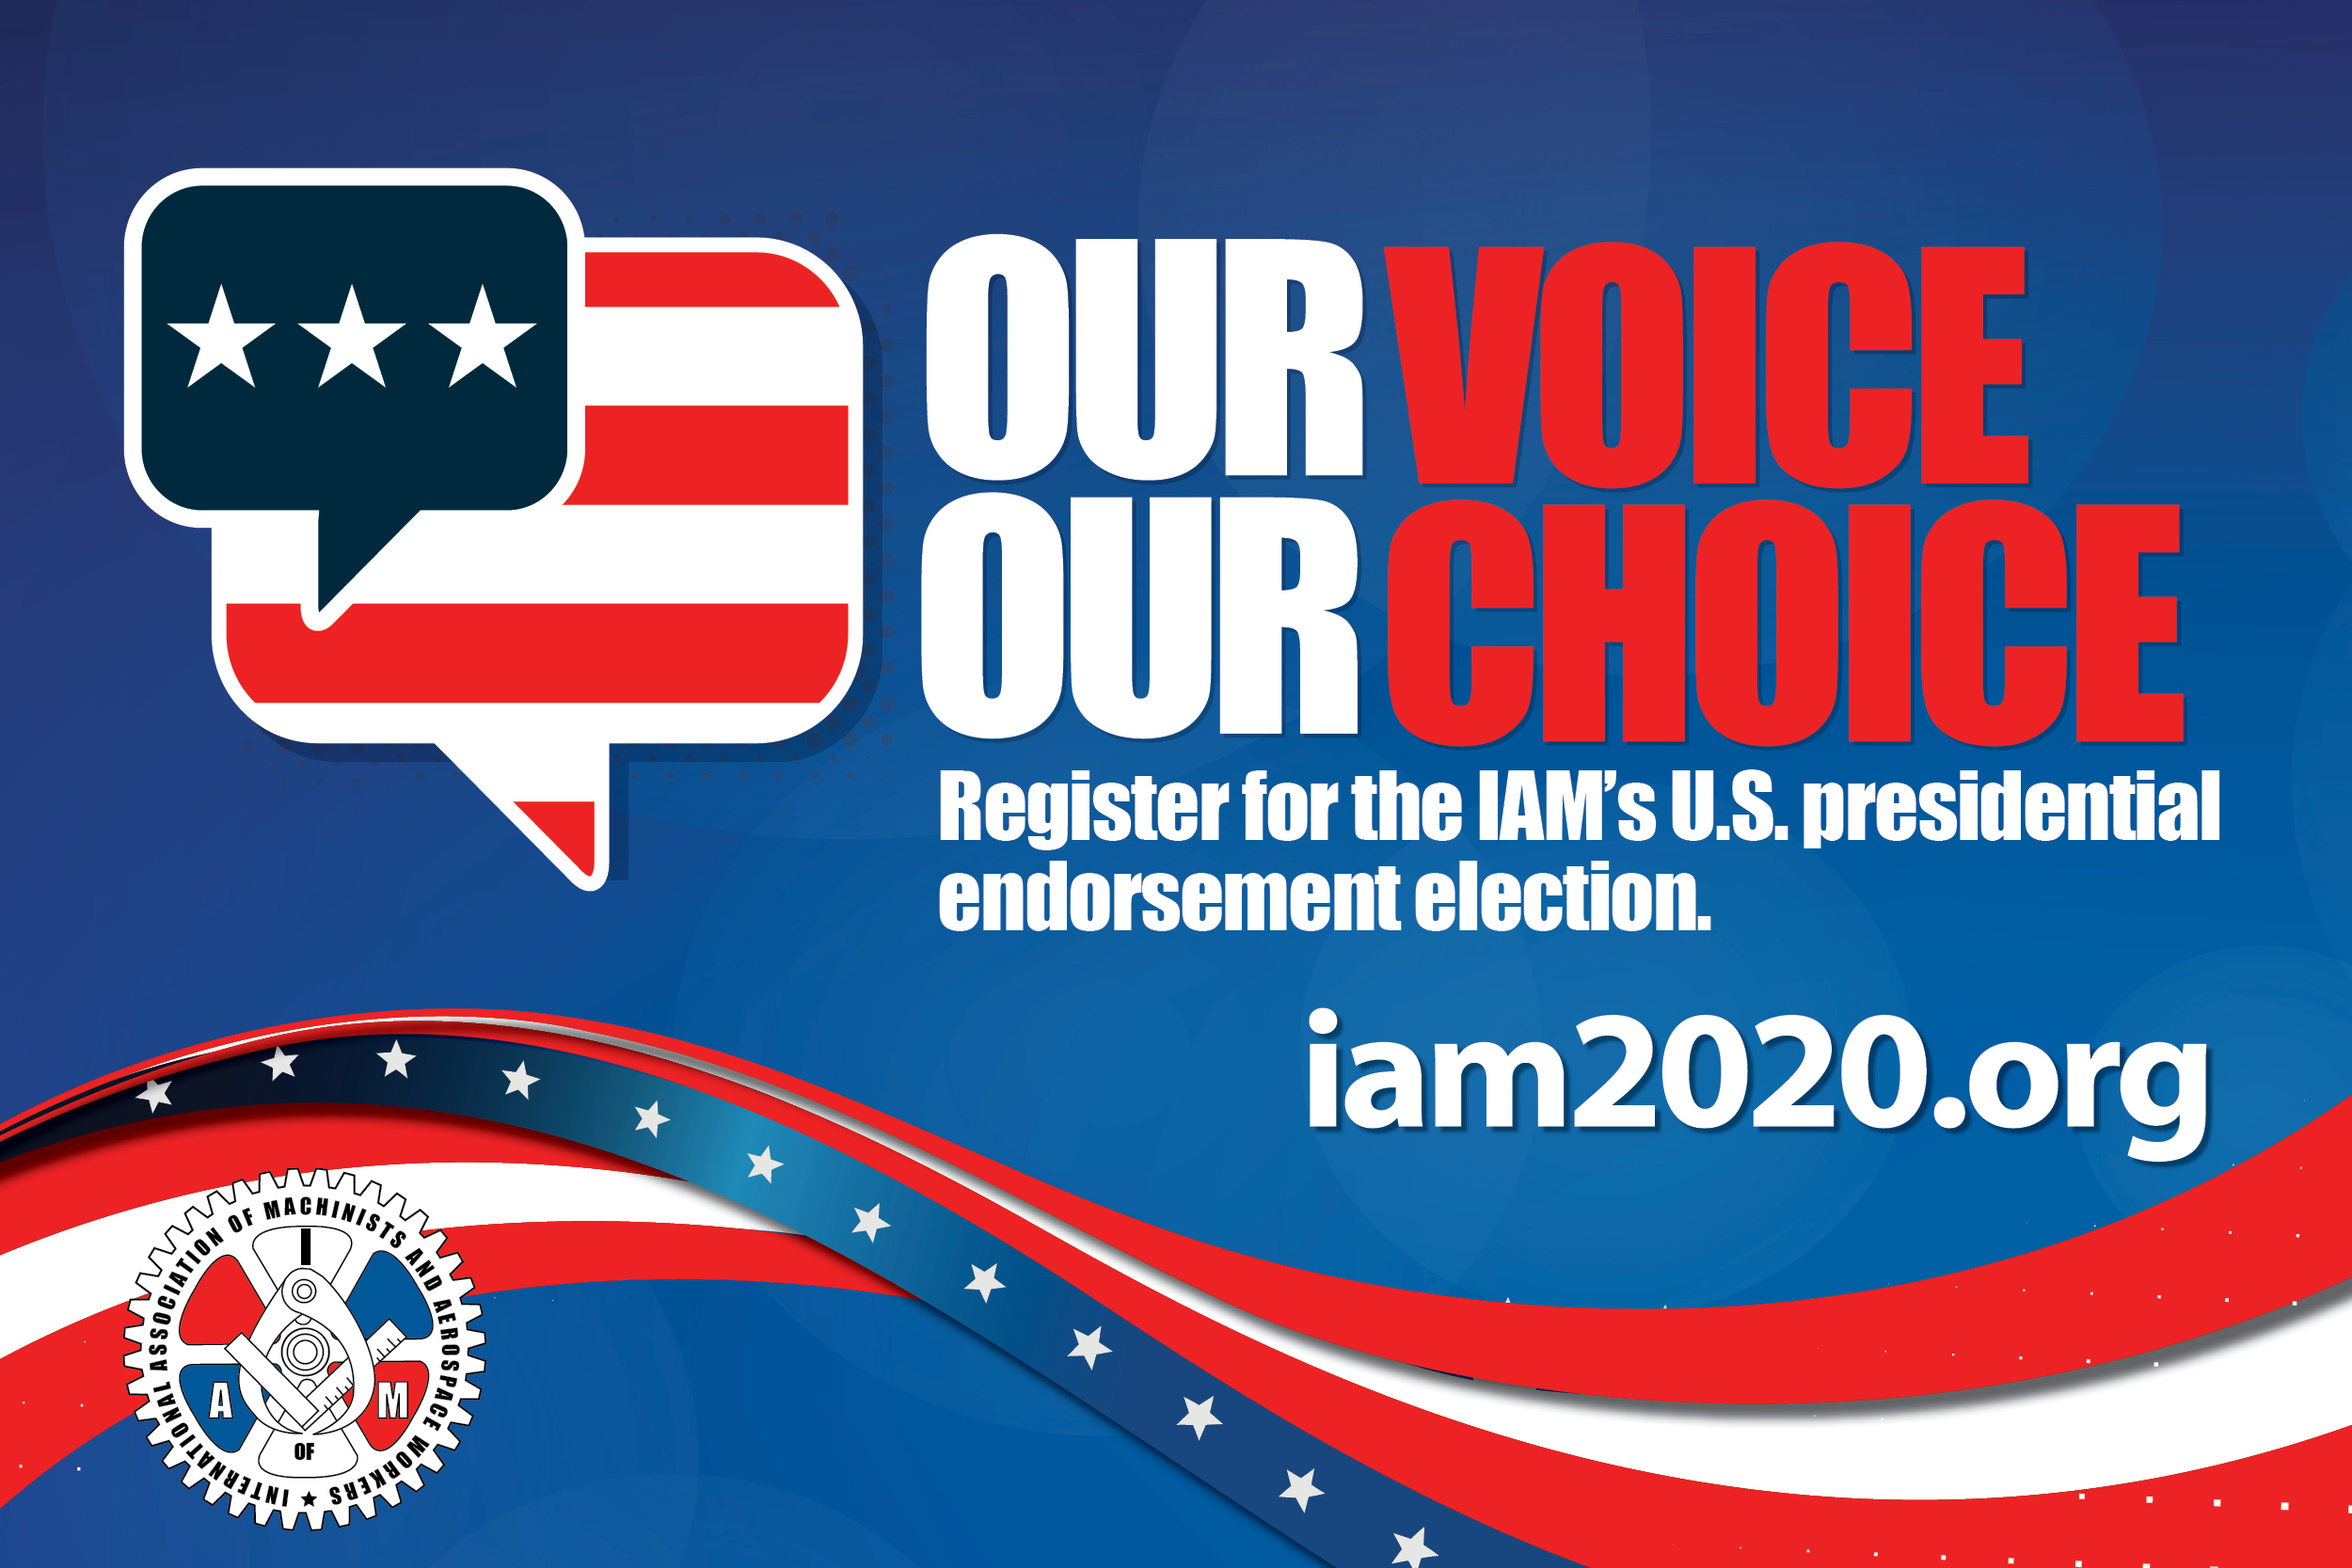 Register for IAM's 2020 Presidential Endorsement Election